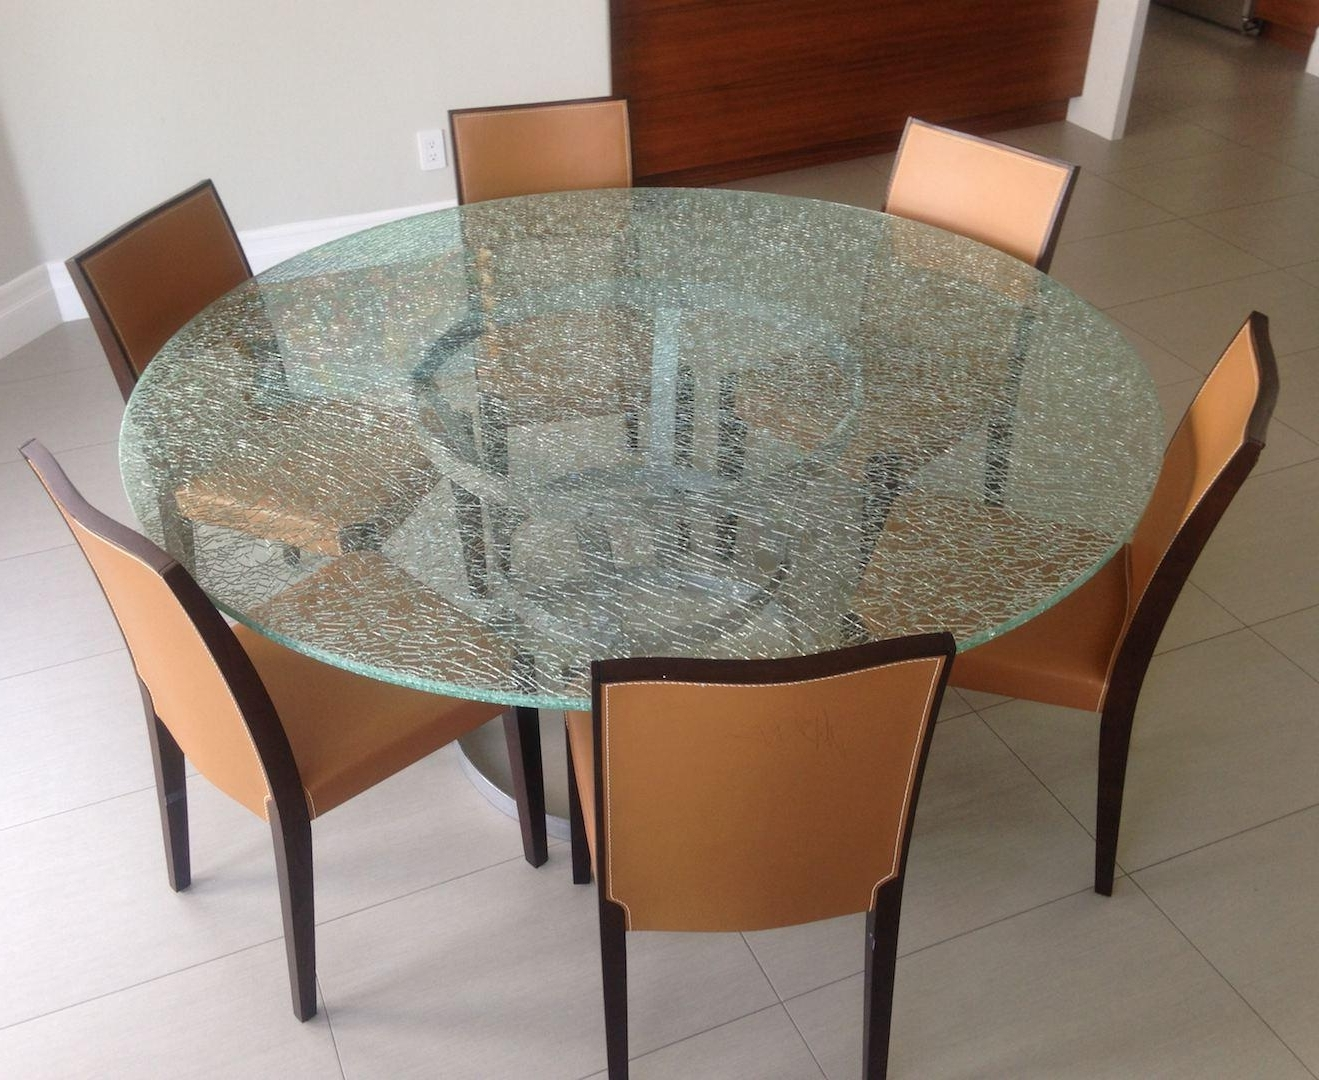 2017 Crackle Glass Dining Table Top : House Photos – Crackle Glass Dining Pertaining To Wooden Glass Dining Tables (Gallery 13 of 25)